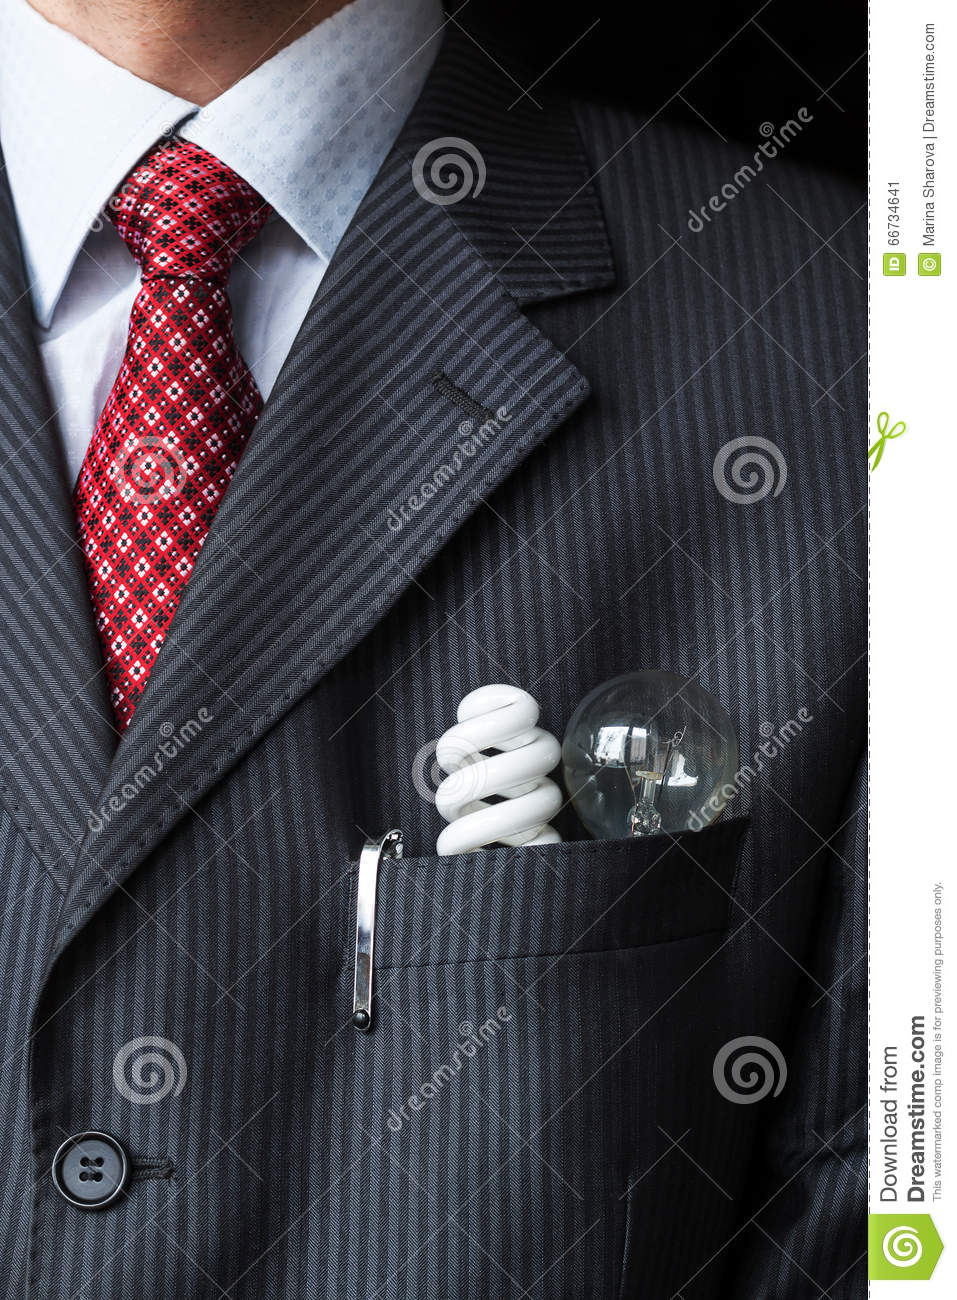 The elegant stylish businessman keeping two light bulbs - Incandescent and fluorescent energy efficiency - in his breast pocket.